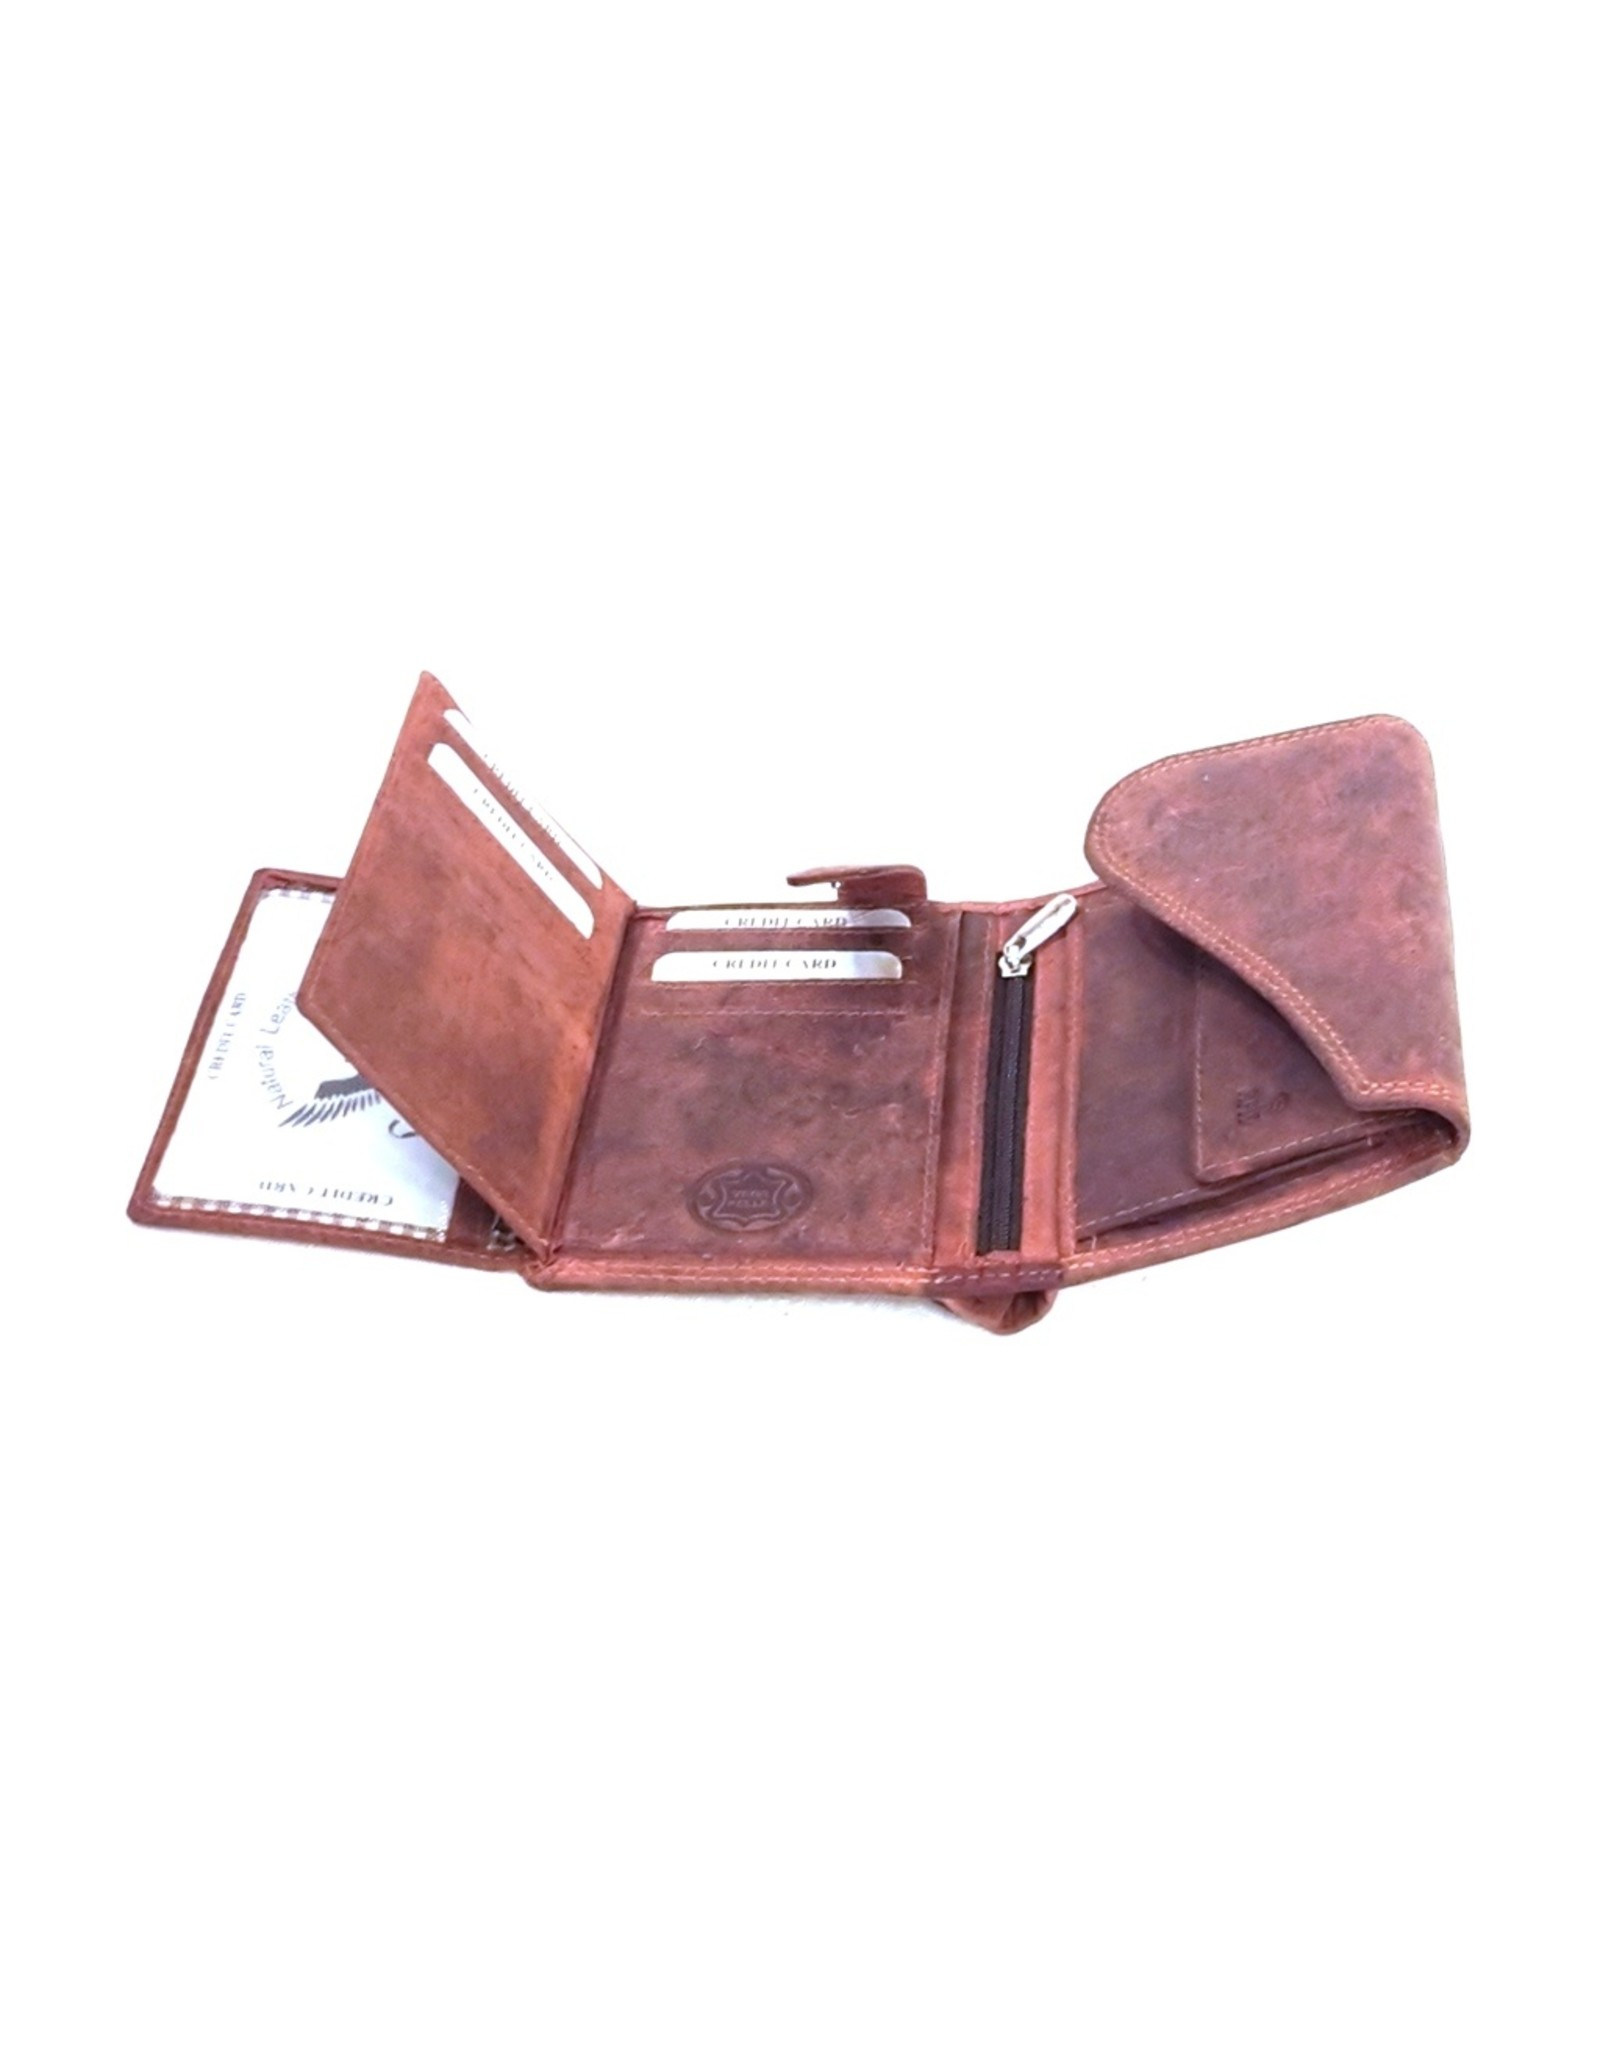 BestBull Leather Wallets - Leather wallet with golf cover Bordeaux